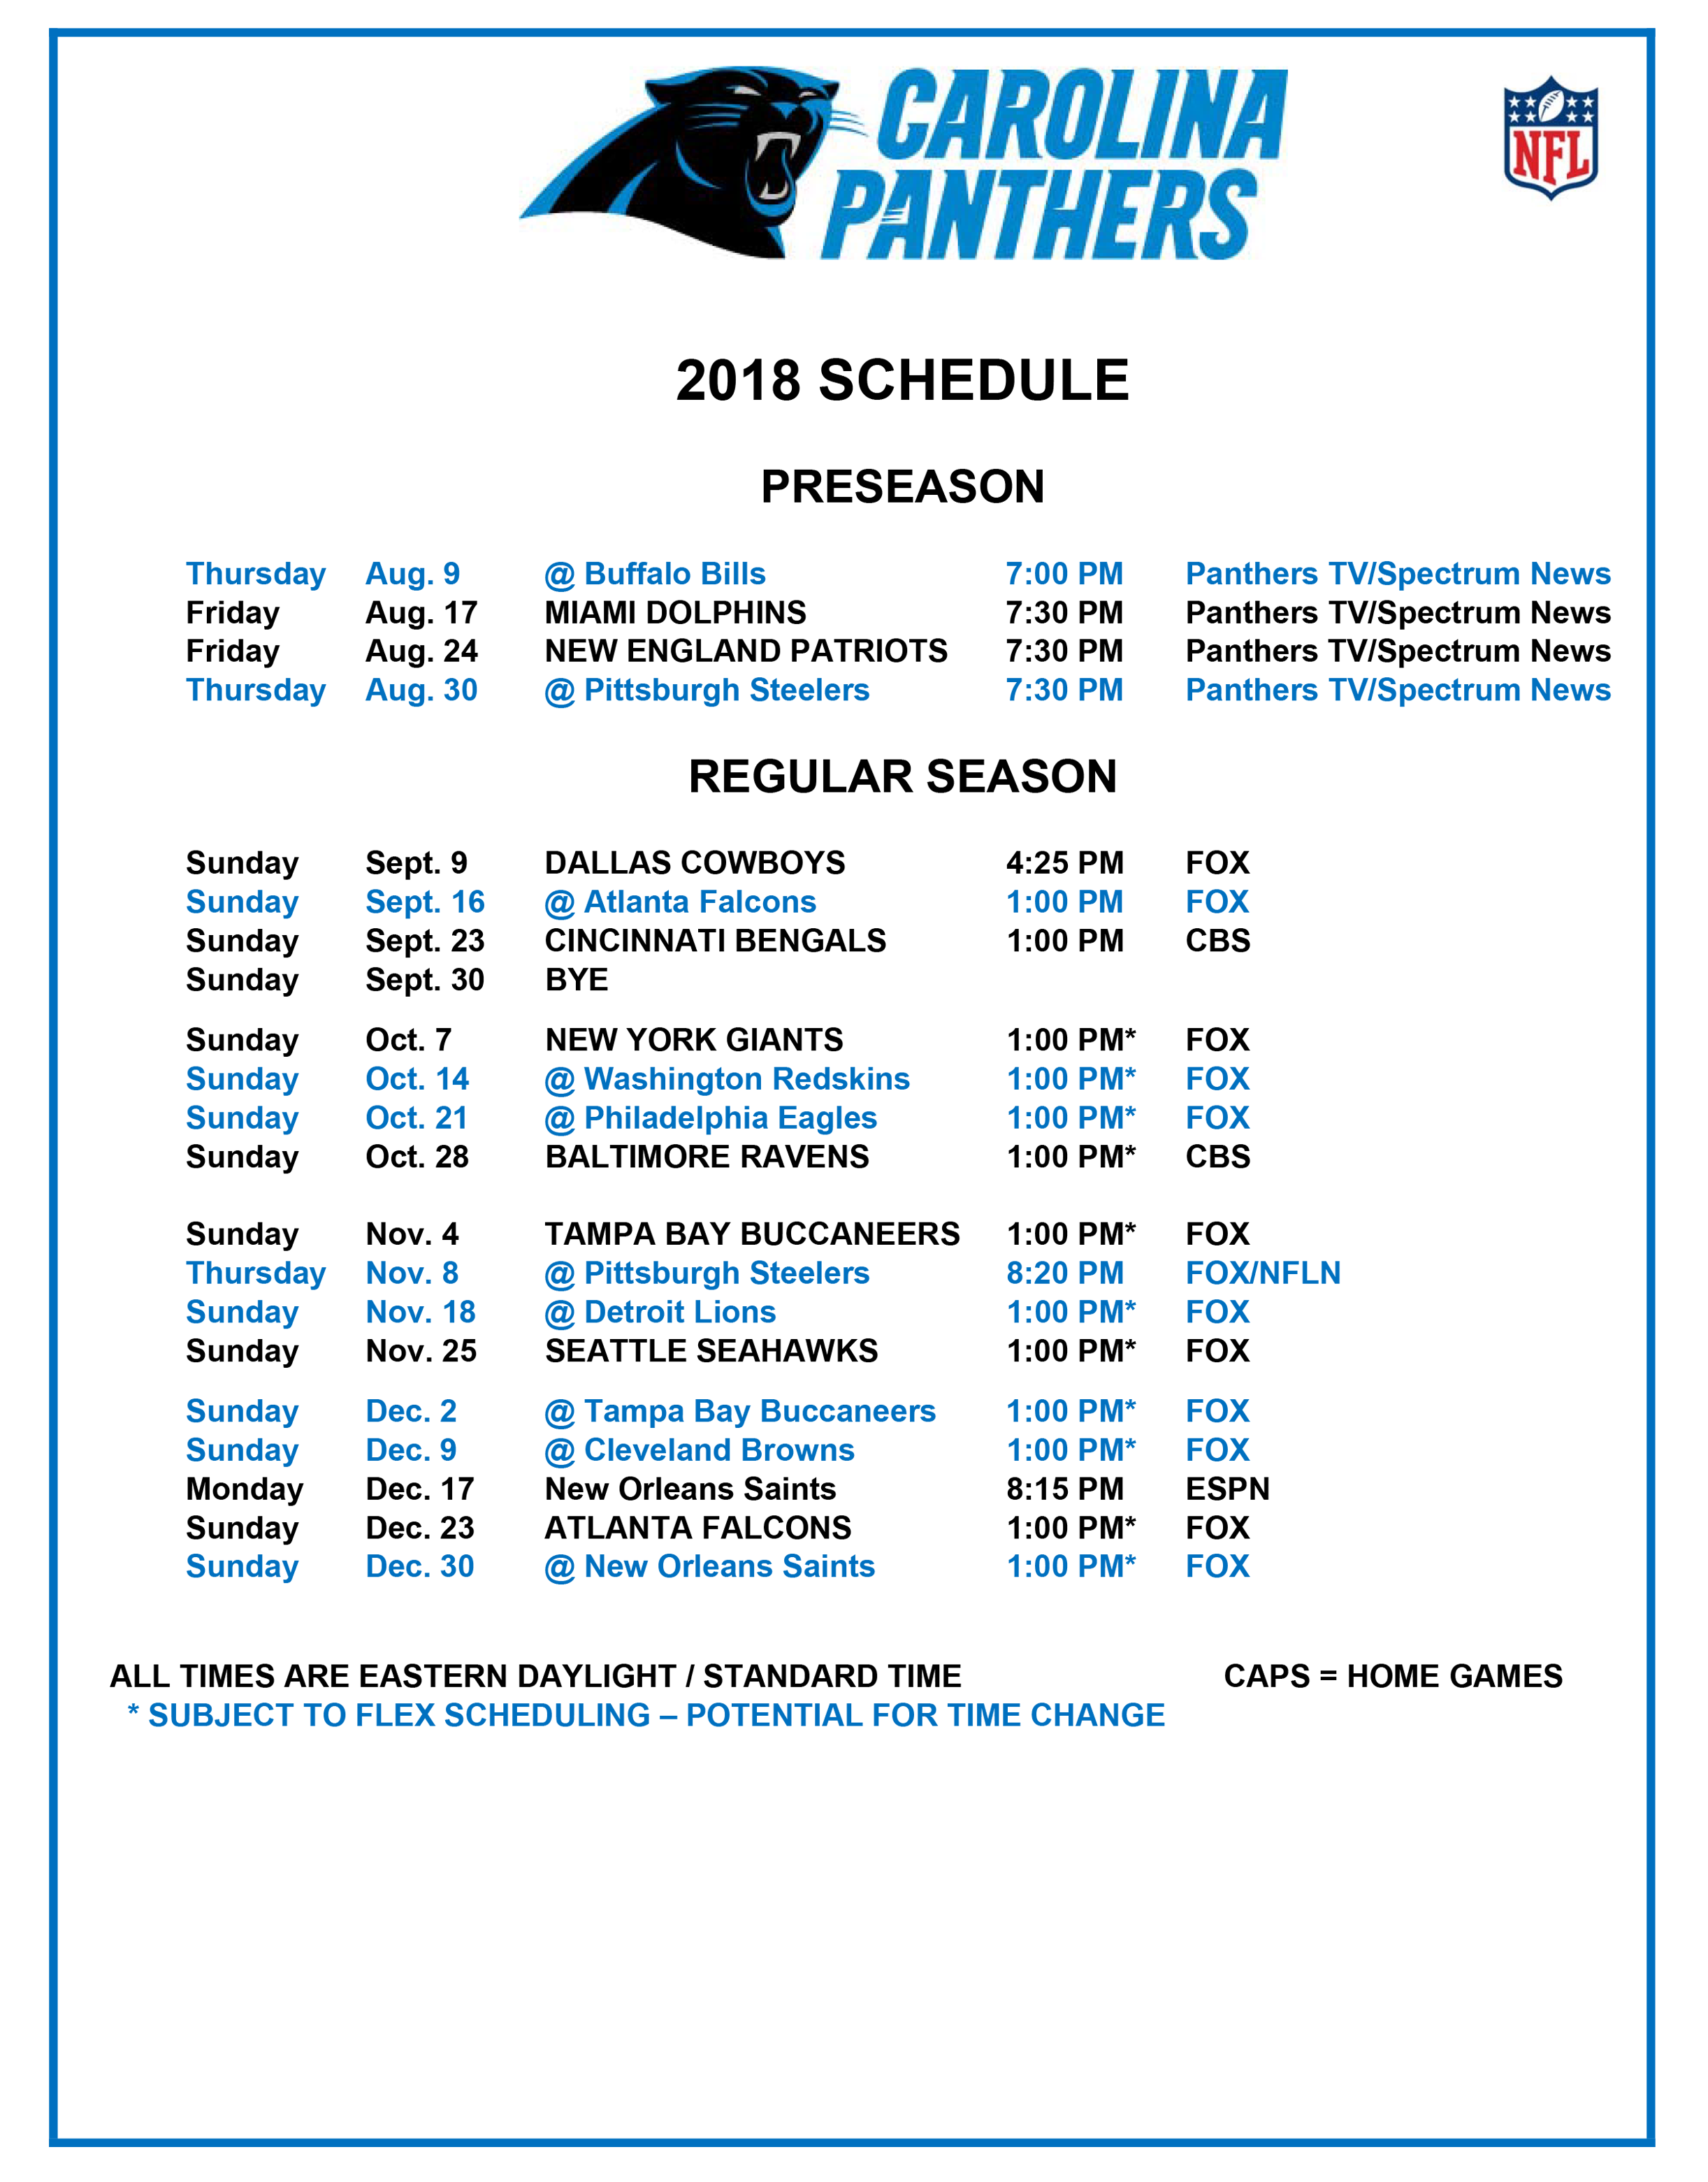 The Carolina Panthers Release Their 2018 Schedule - WCCB ...